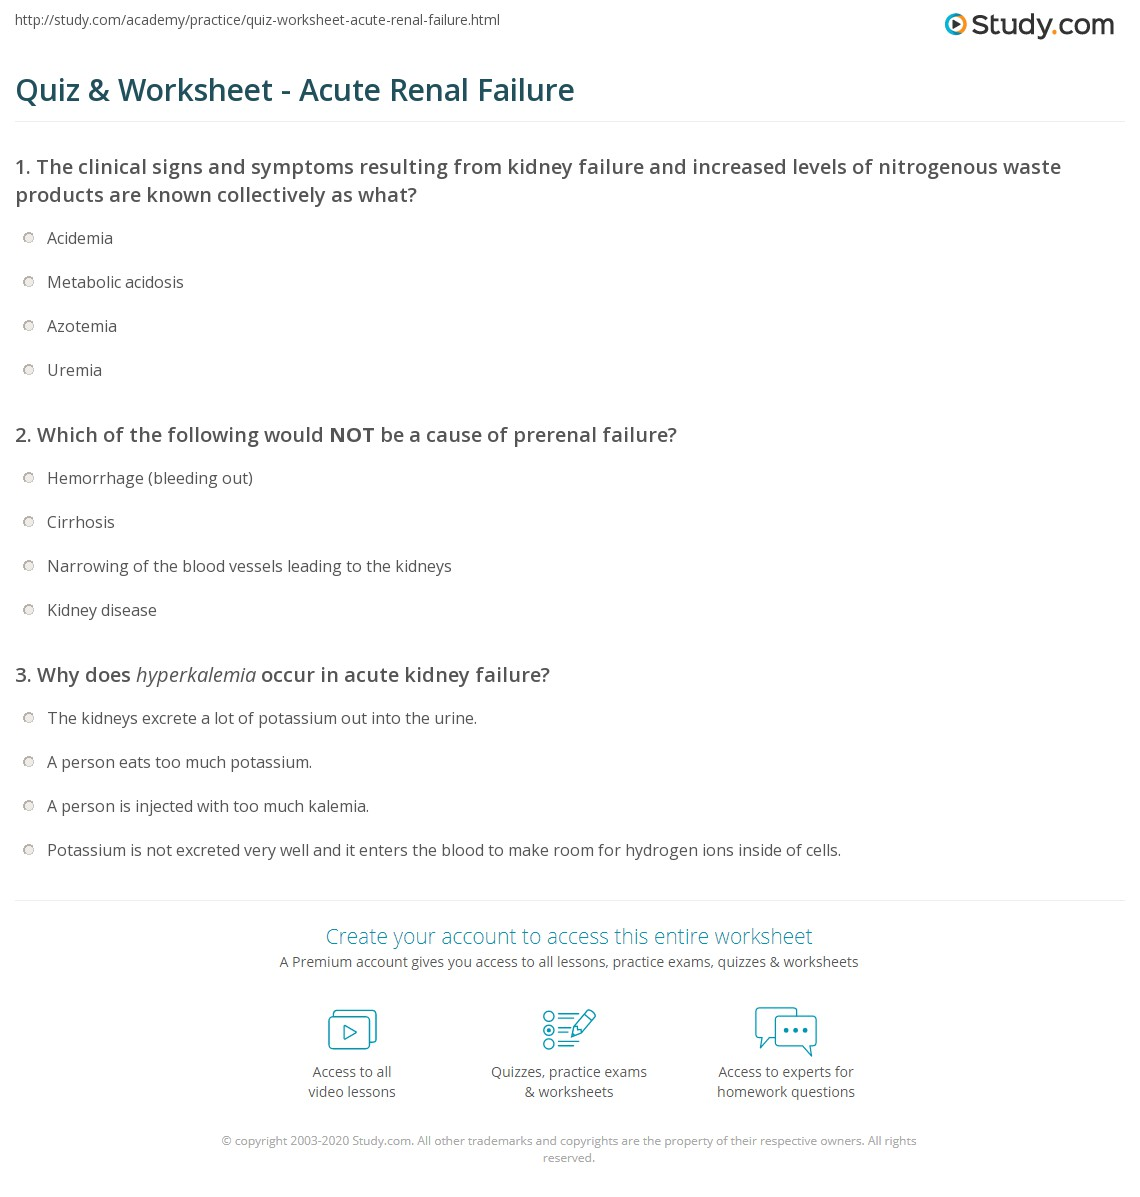 Quiz & Worksheet - Acute Renal Failure | Study com